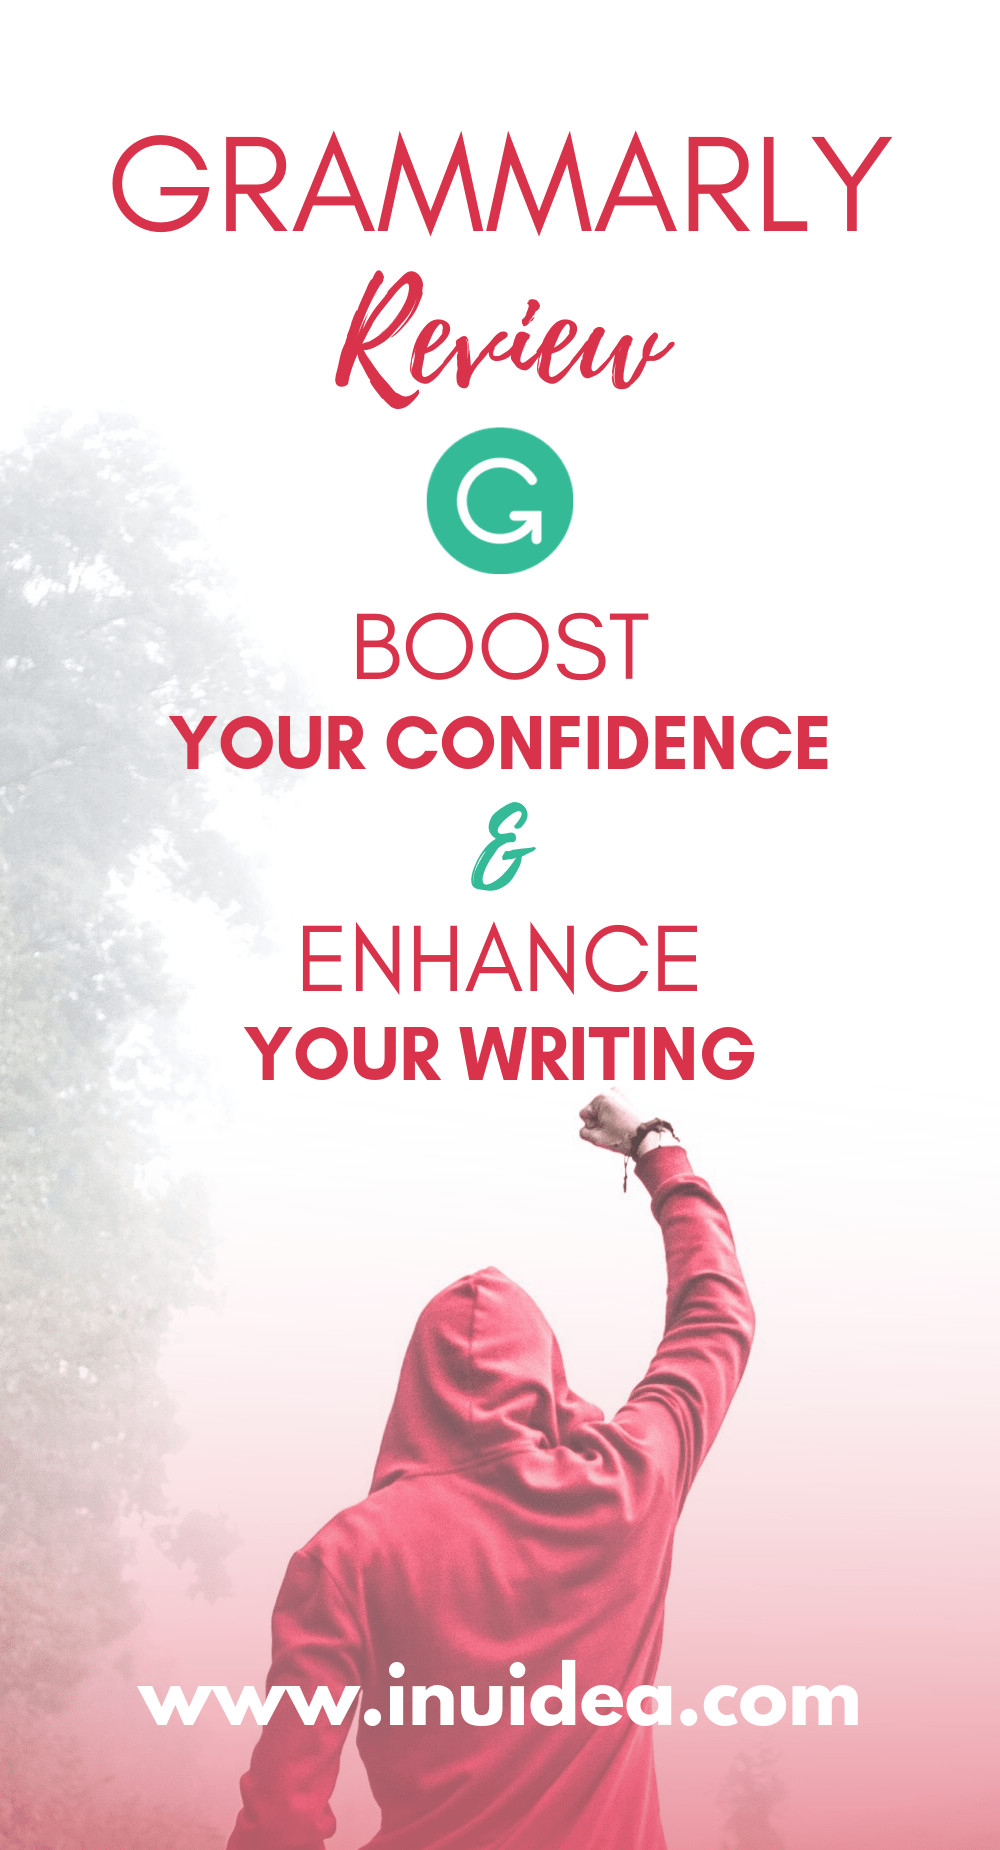 How Is Proofreading Software Grammarly Reviews